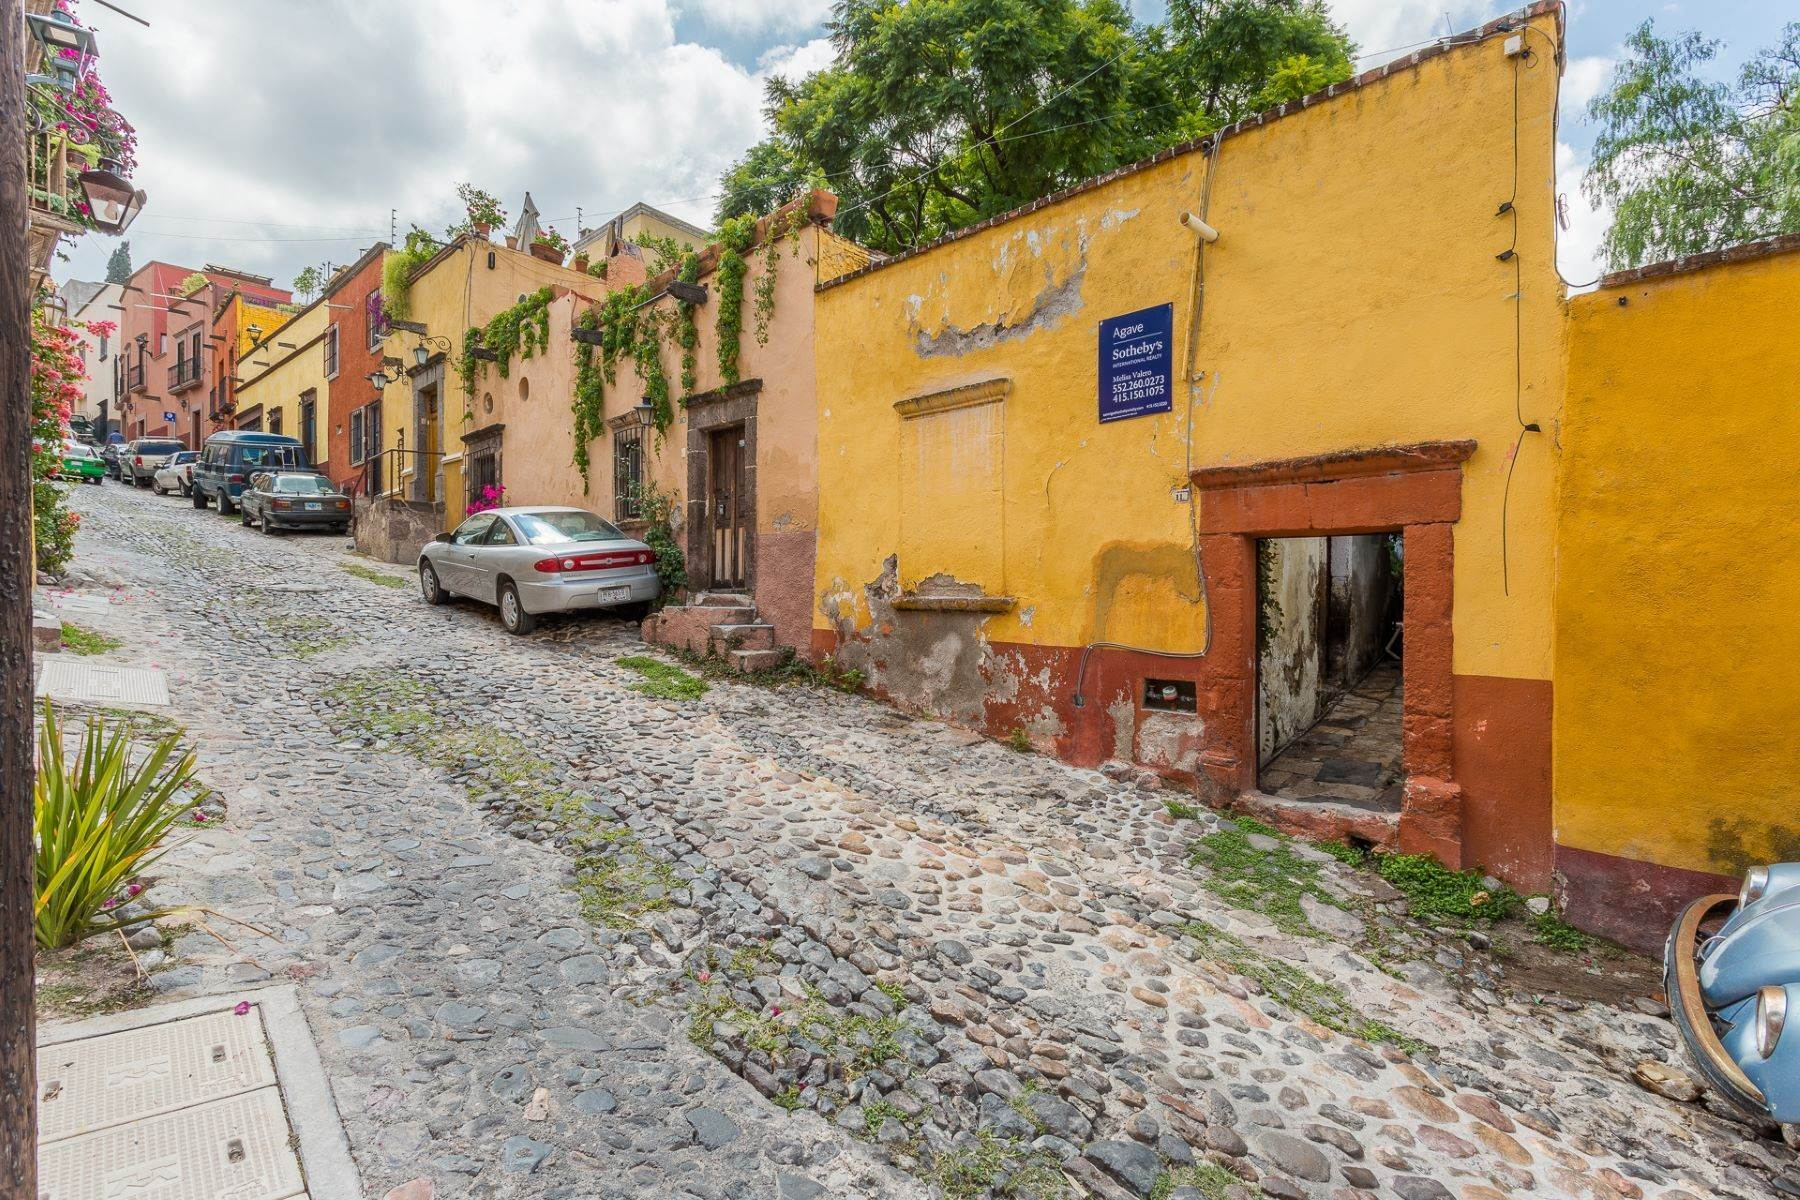 Property for Sale at Montes de Oca 11 San Miguel De Allende, Guanajuato 37700 Mexico